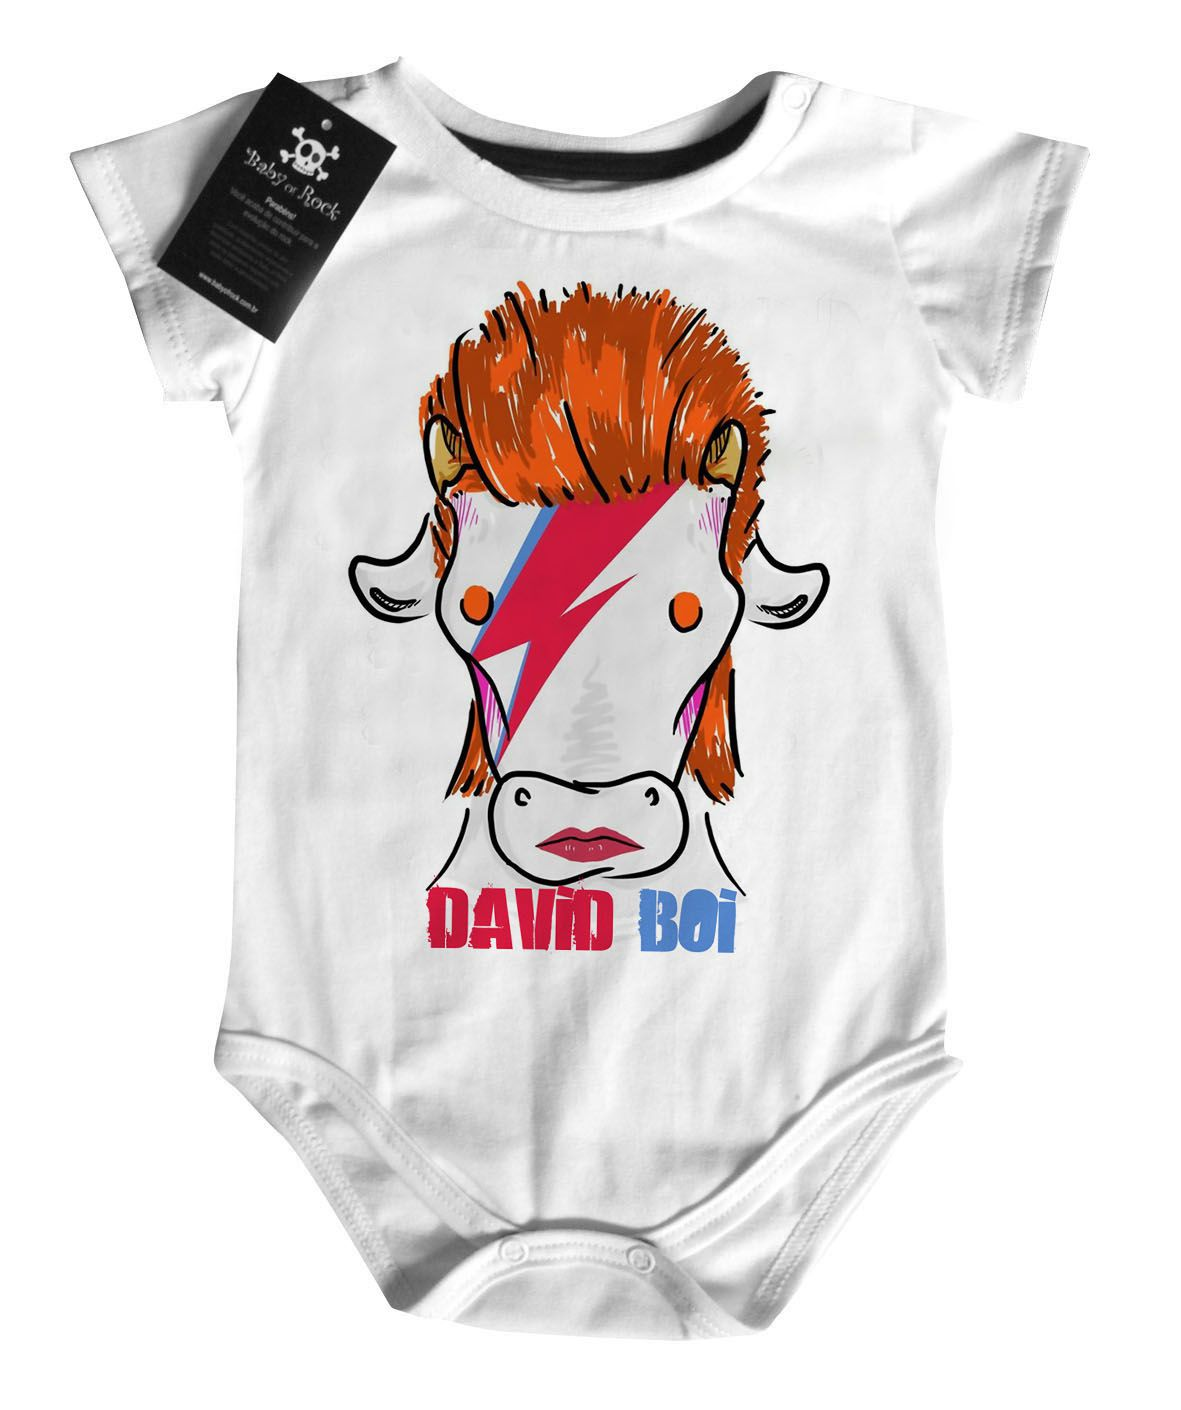 Body Bebê David BOI - Arte Bovina  Rock n Roll- White  - Baby Monster S/A